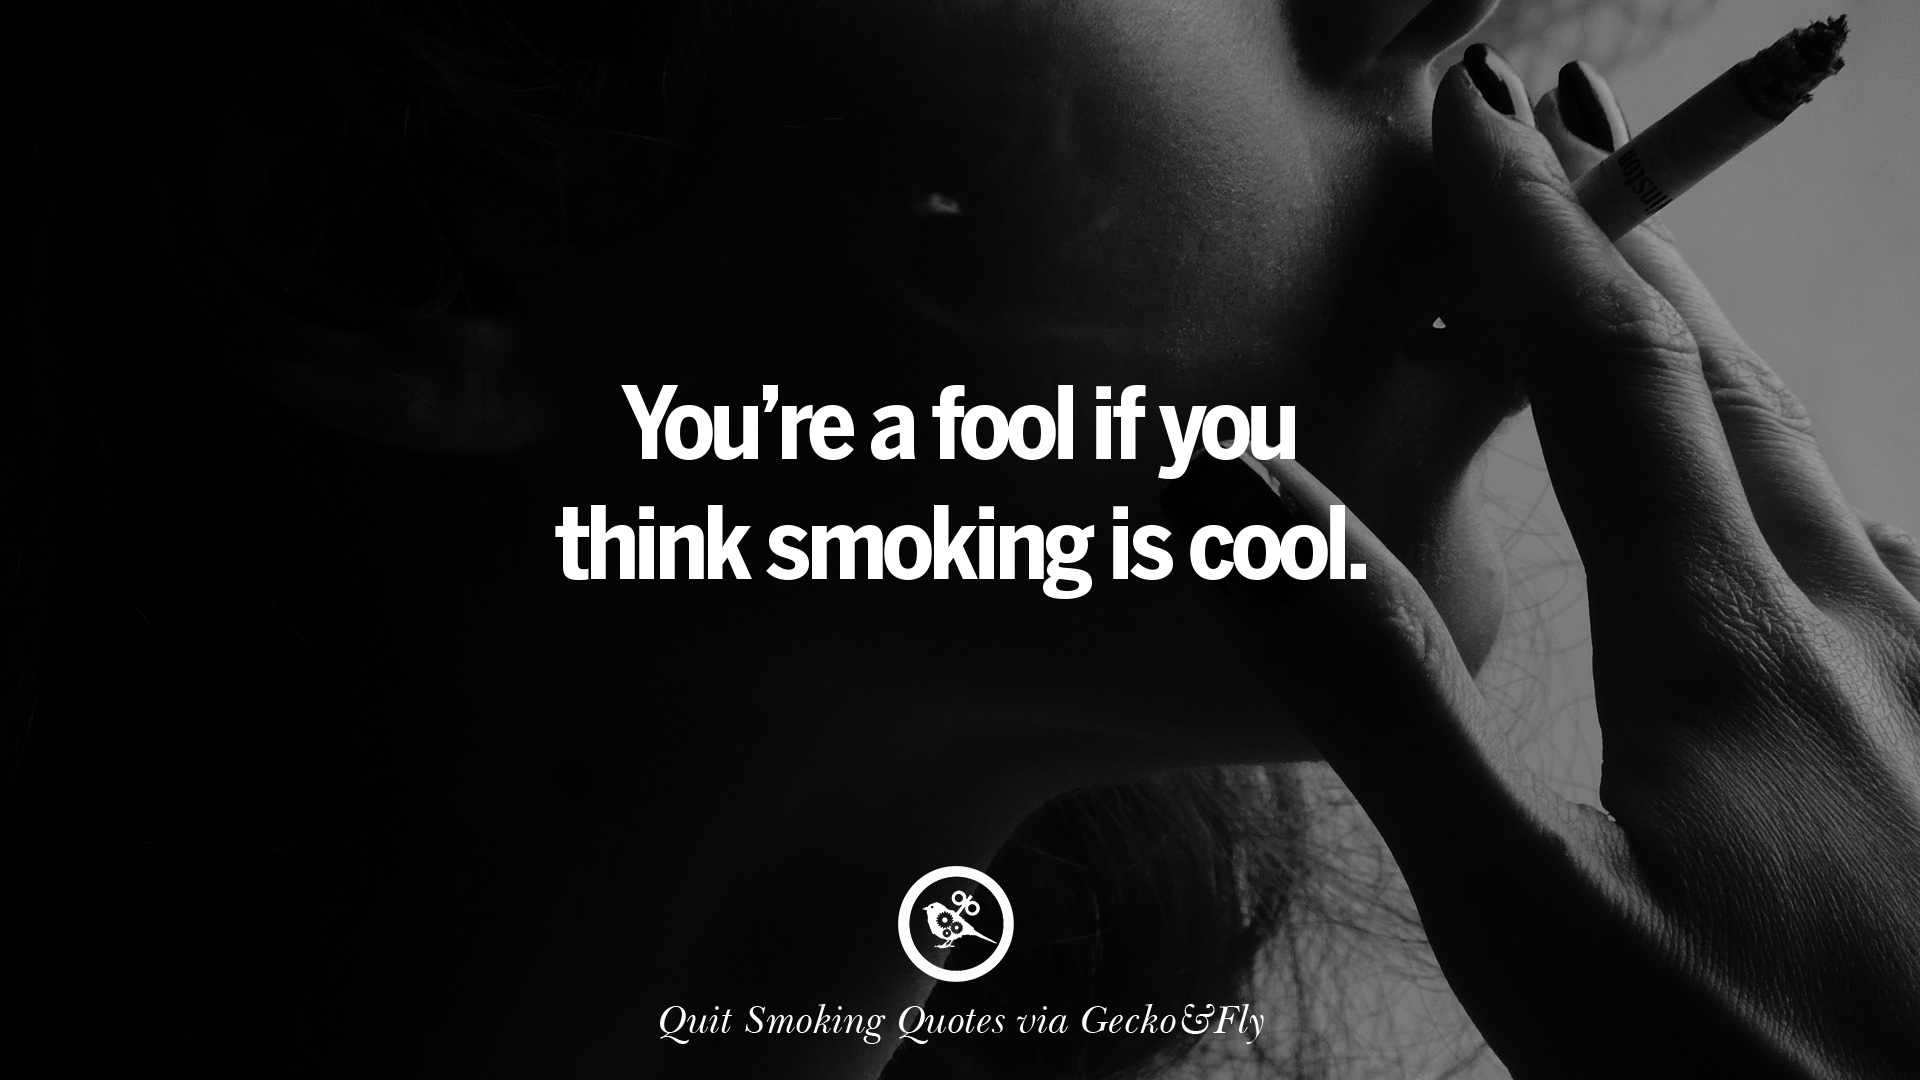 Anti Smoking Quotes 20 Motivational Slogans To Help You Quit Smoking And Stop Lungs